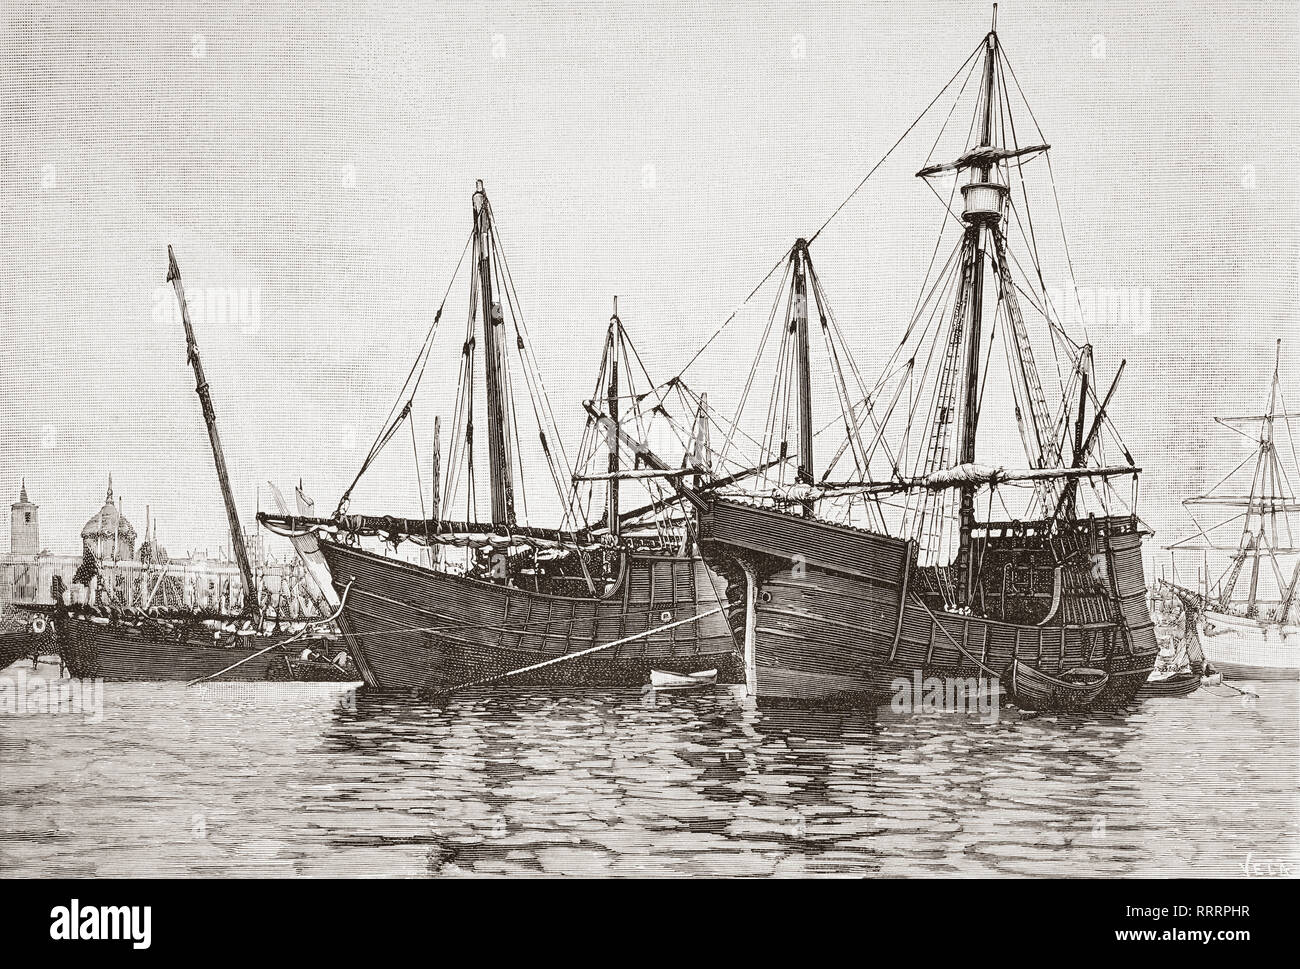 Replicas of La Nina and La Pinta ships. The original caravel-type vessels were used by Christopher Columbus in his first transatlantic voyage in 1492.  From La Ilustracion Artistica, published 1887. - Stock Image